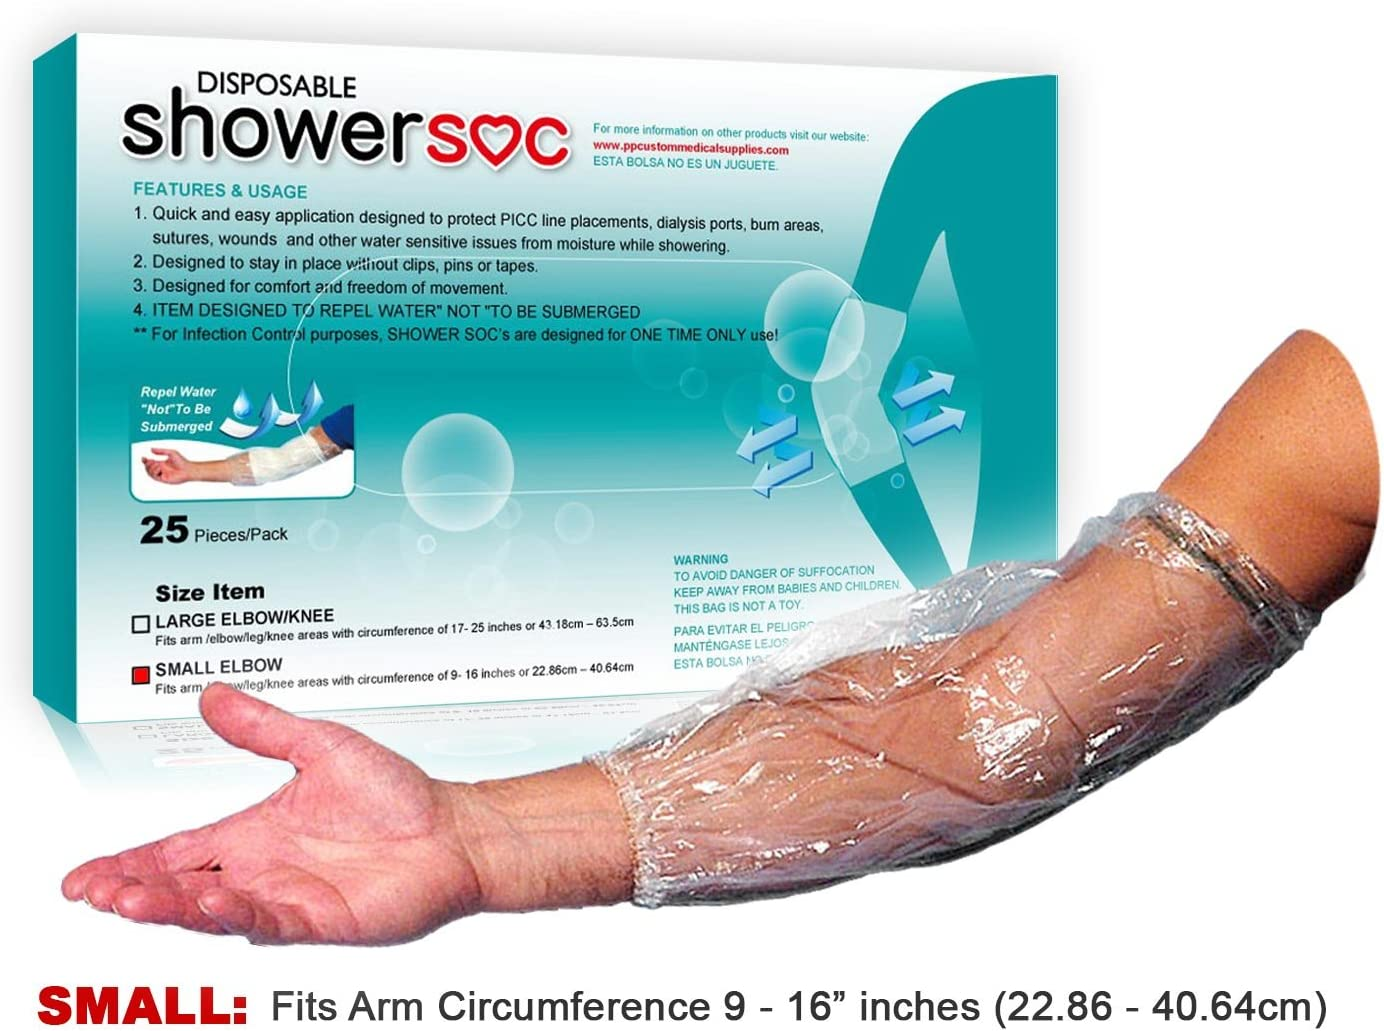 """Picc Line Shower Sleeve - 25 Pack - Small - Elbow,Knee - Protector Sleeve Guard, Disposable Barrier - Fits Bicep-Knee-Arm 9"""" - 16"""" - for Chemo Infusion Sites and Tattoos"""